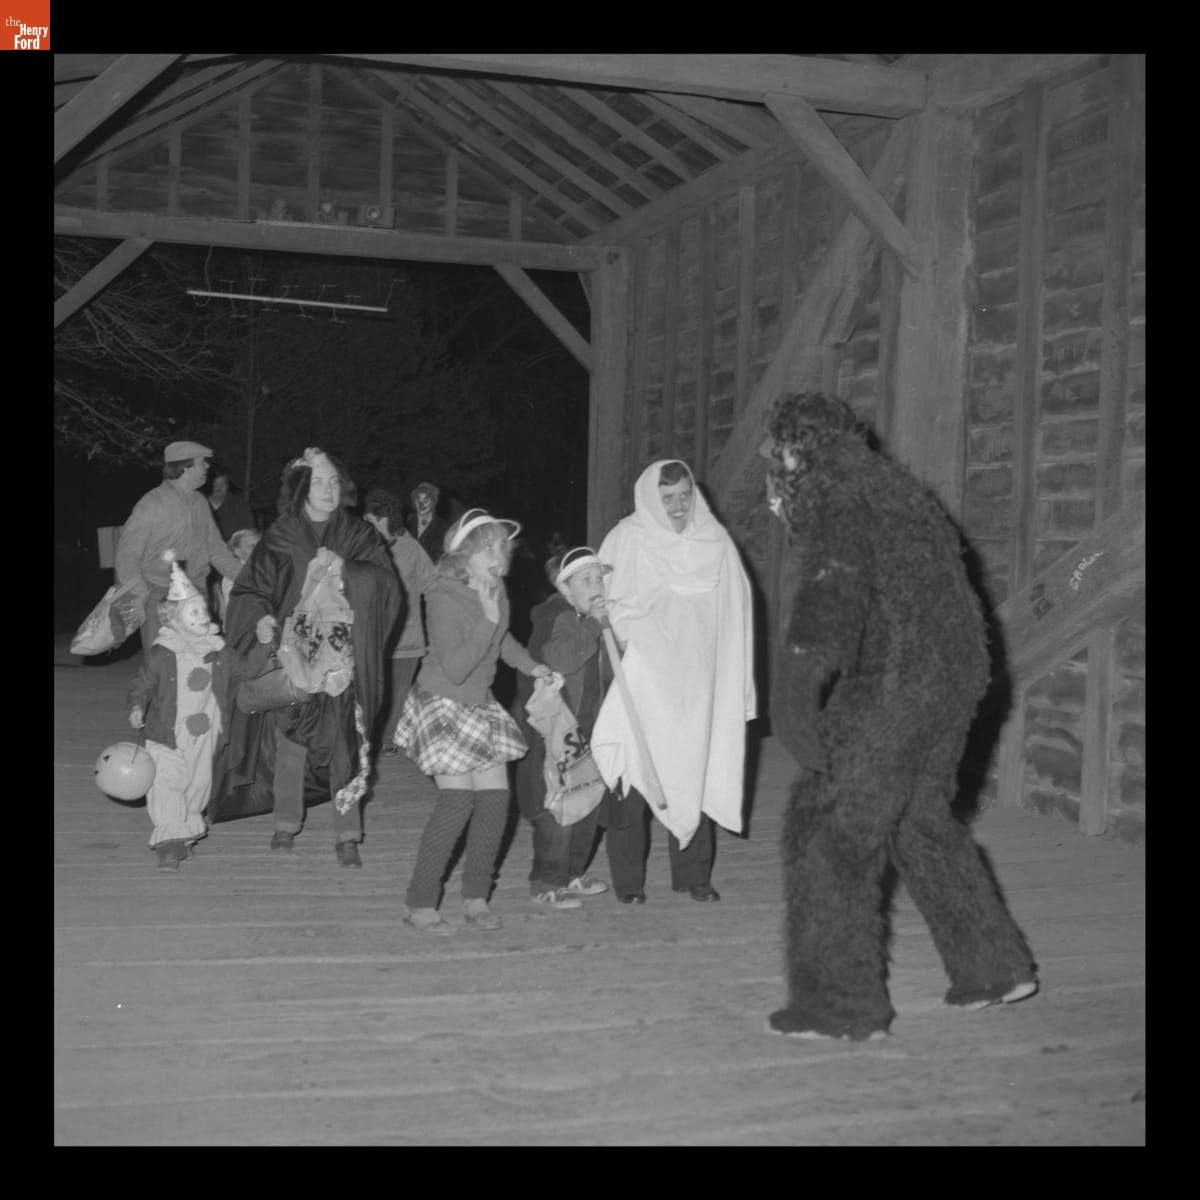 Person in a gorilla costume in front of adults and children, many in costume, in a wooden covered bridge